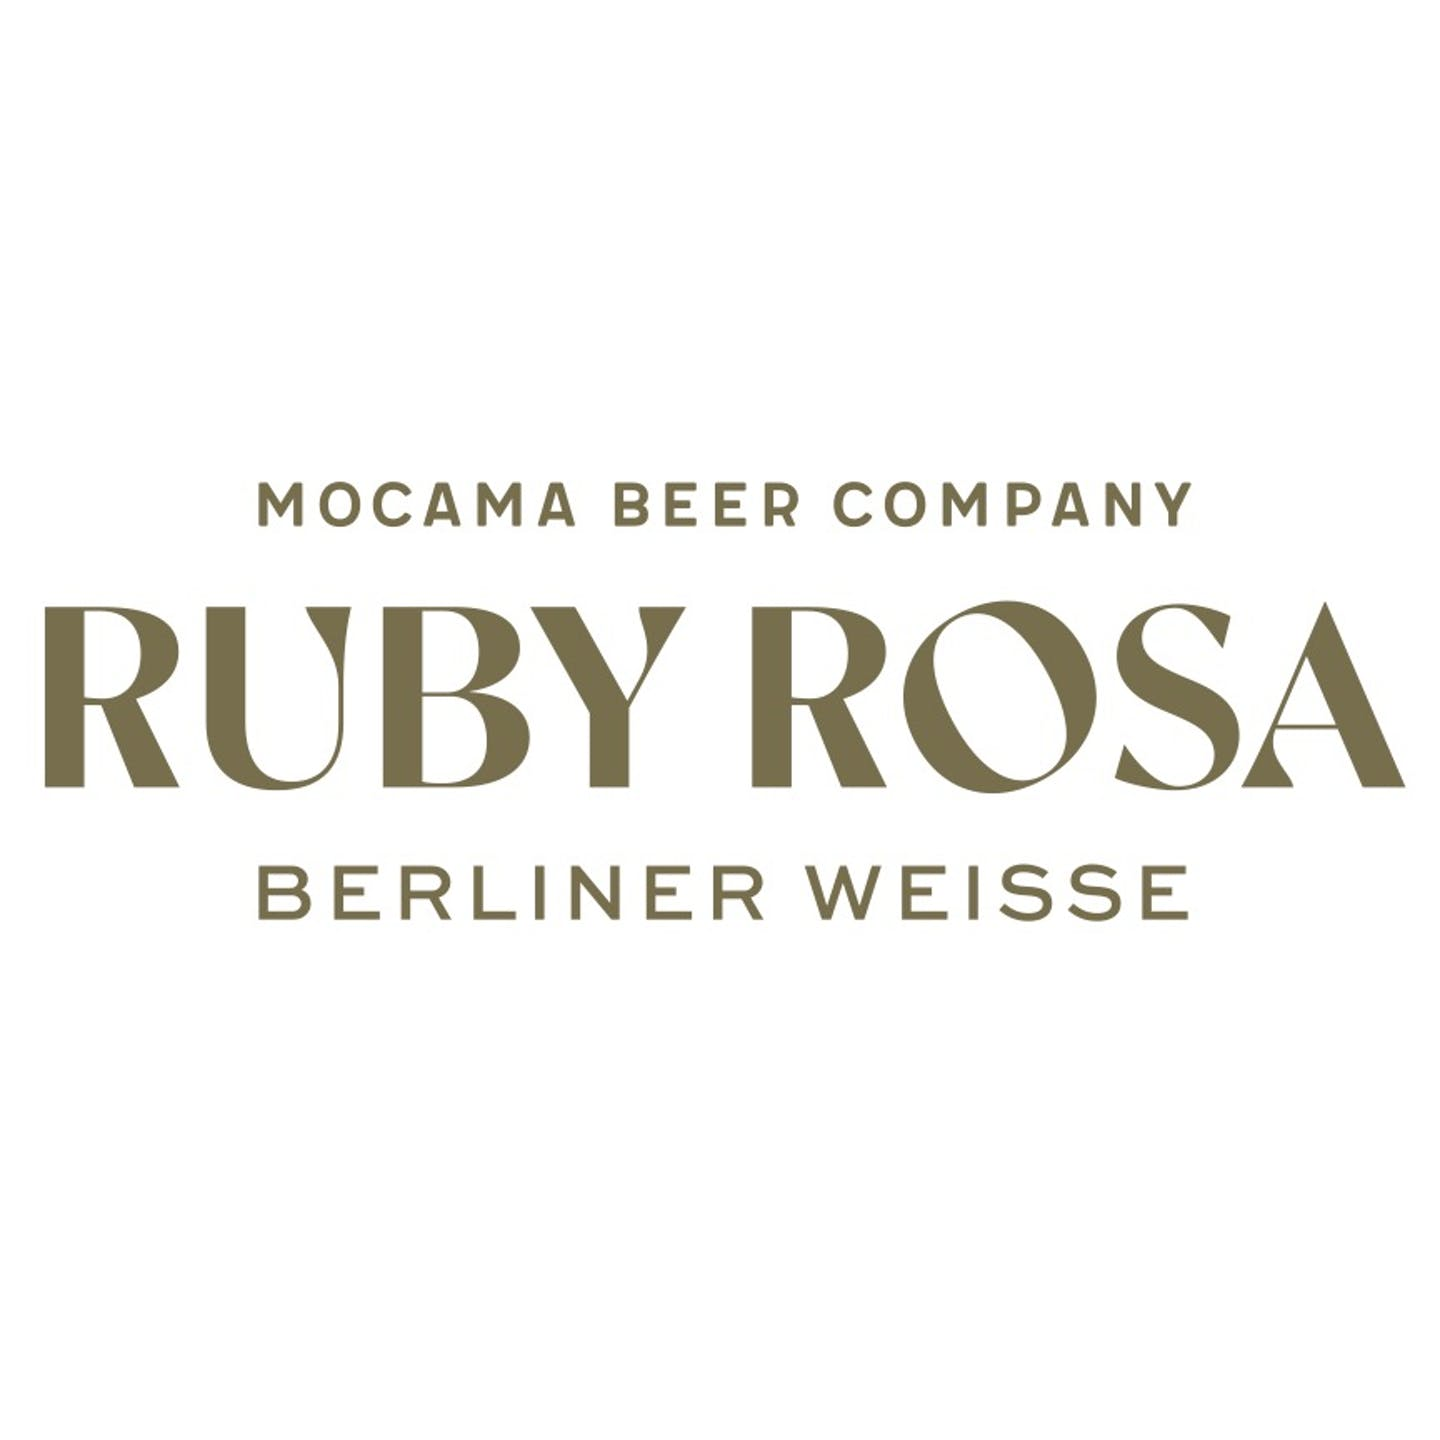 RUBY ROSA TYPE